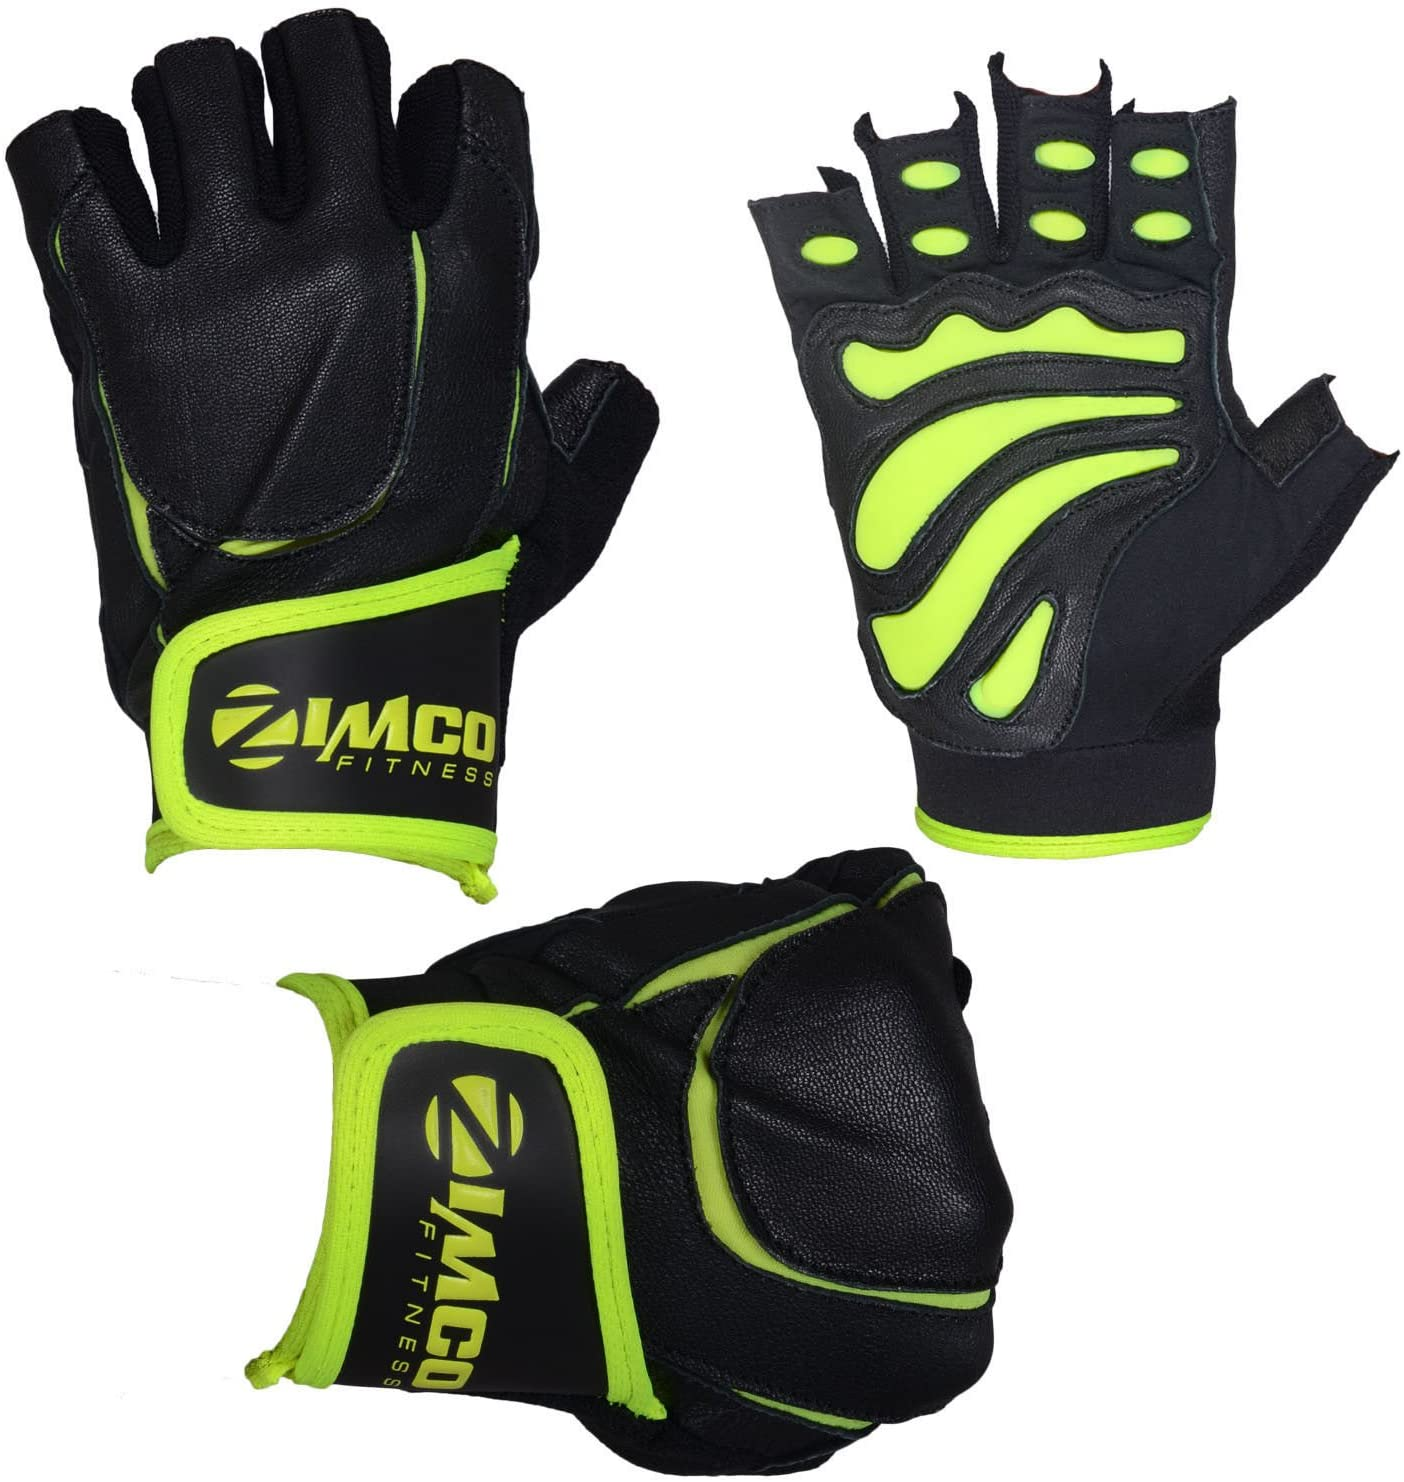 Zimco Pro Weight Lifting Gloves Fitness Mitts Genuine Leather Neon Green Gloves